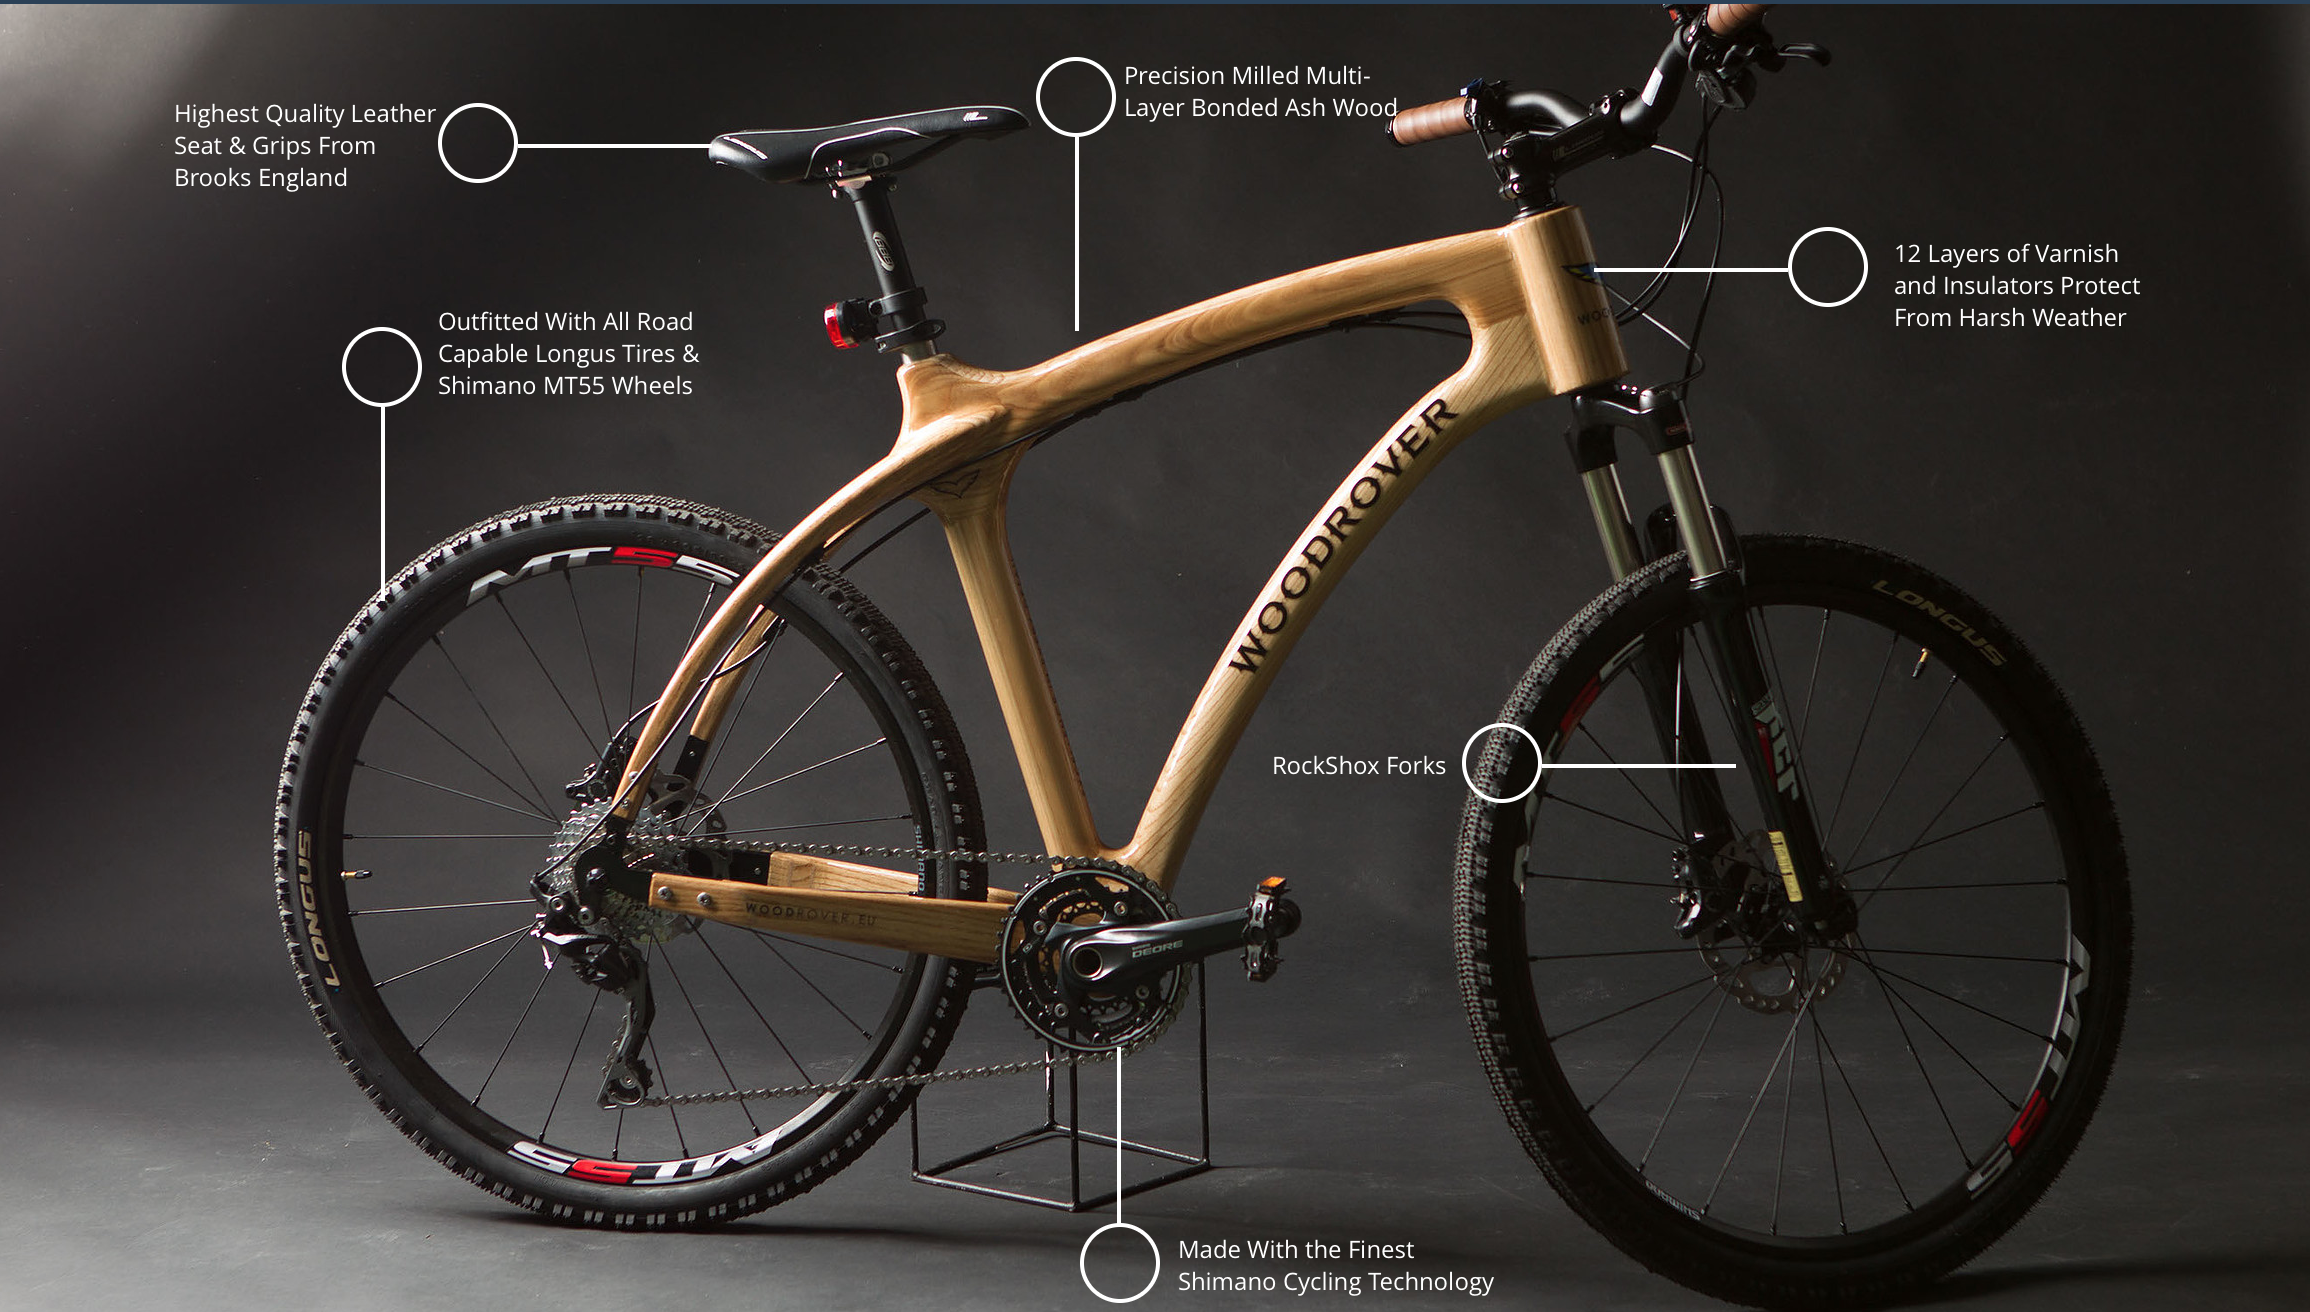 Welcome To The World Of Cycling Excellence Each Woodrover Hand